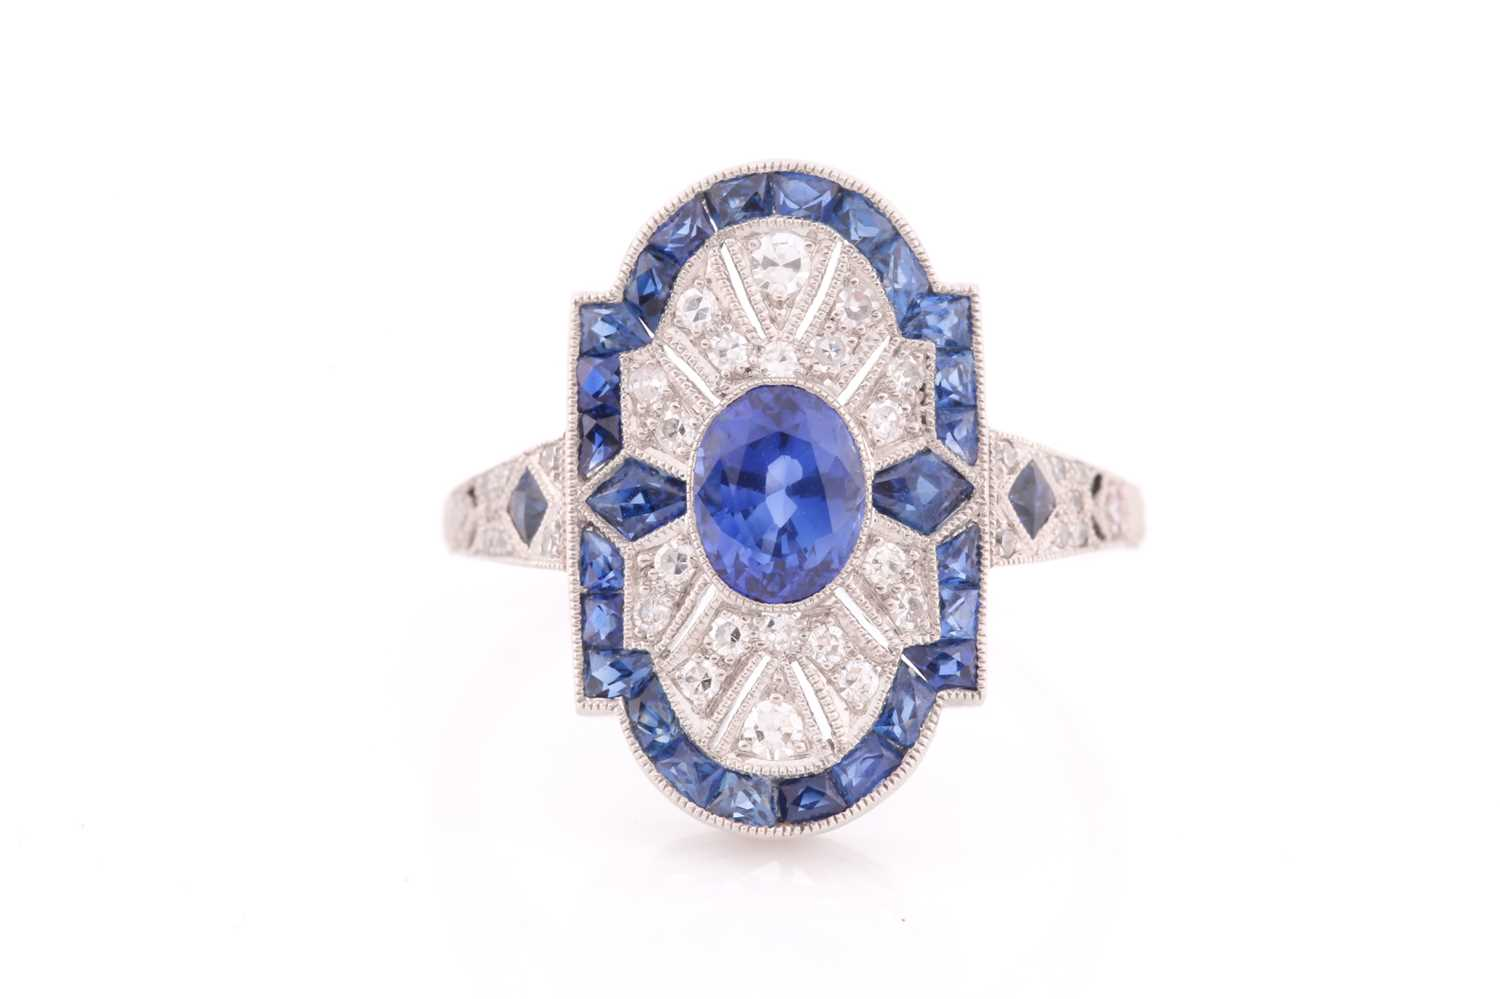 A platinum, diamond, and sapphire plaque ring, in the Art Deco style, centred with a mixed oval-